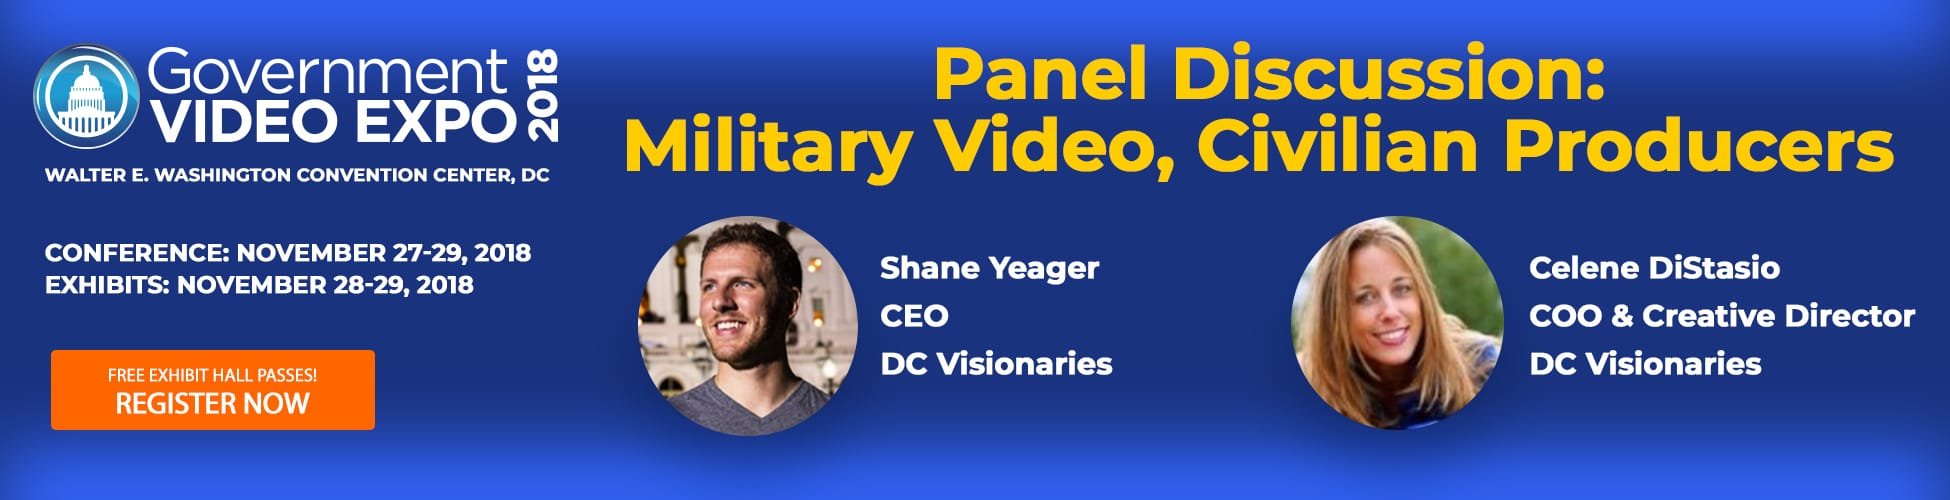 GV Expo 2018, Panel Discussion:  Military Video, Civilian Producers